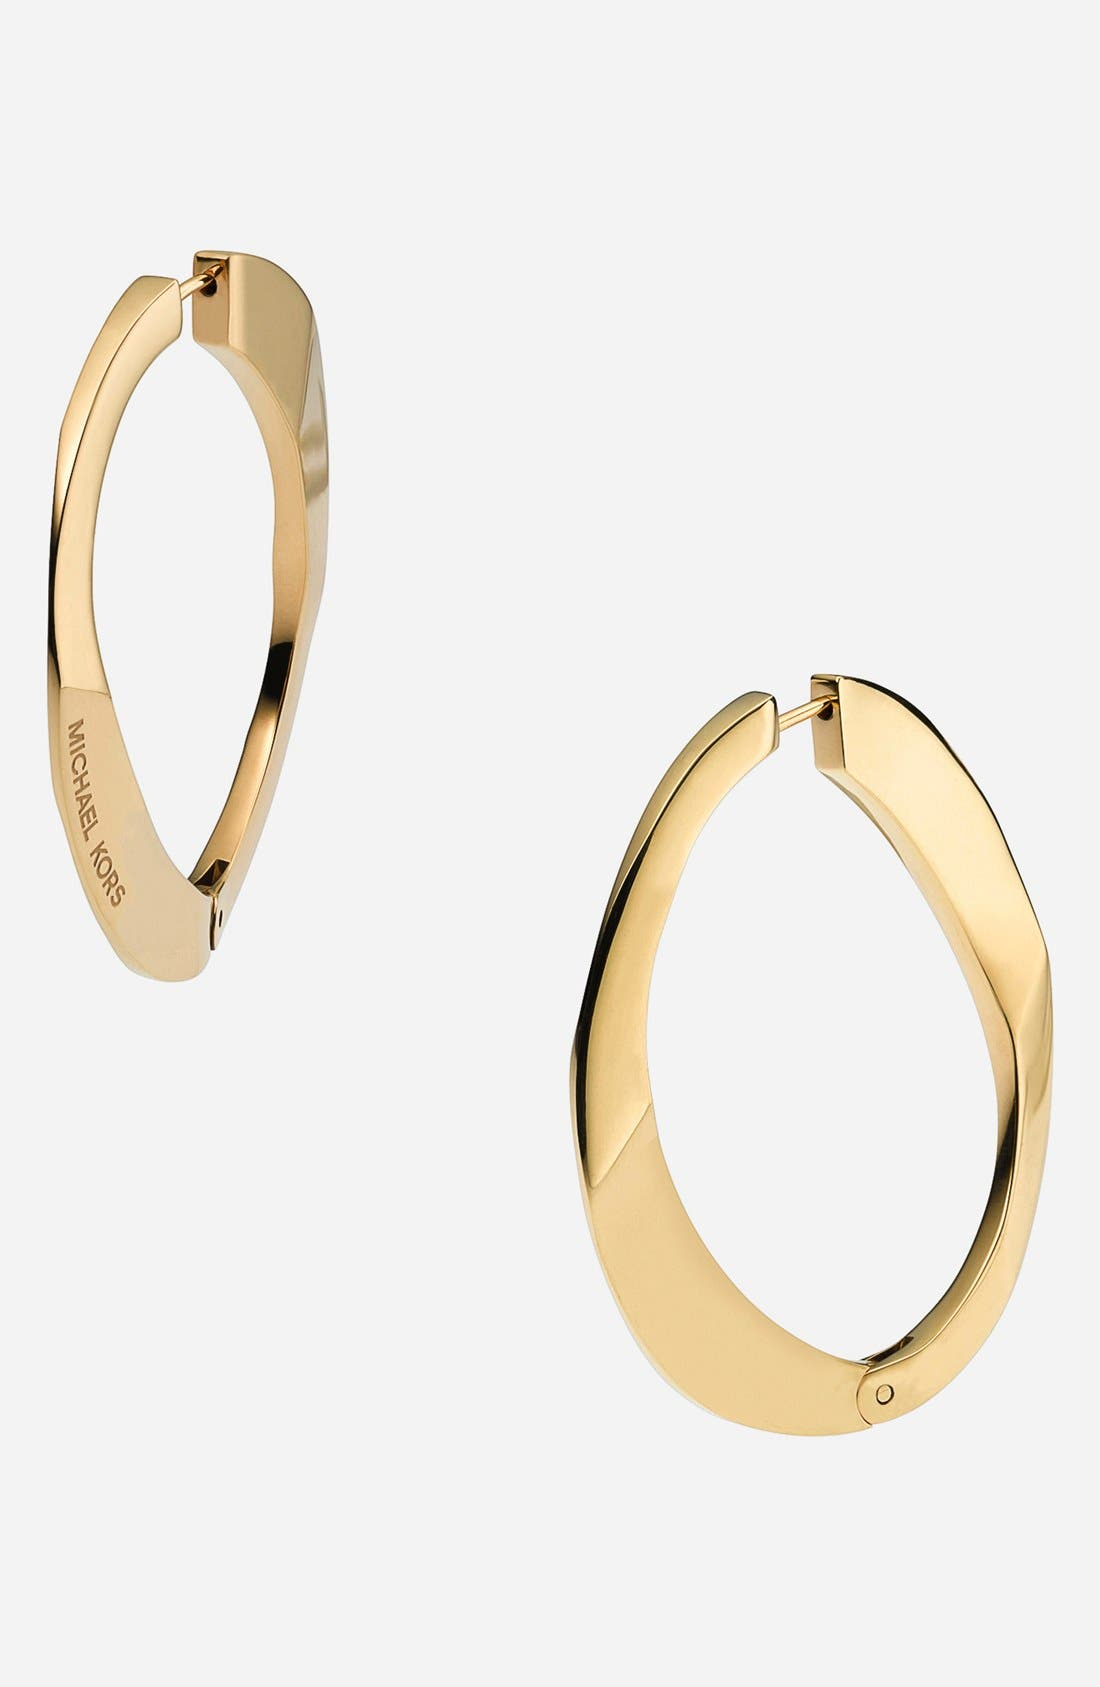 Main Image - Michael Kors Curb Link Hoop Earrings